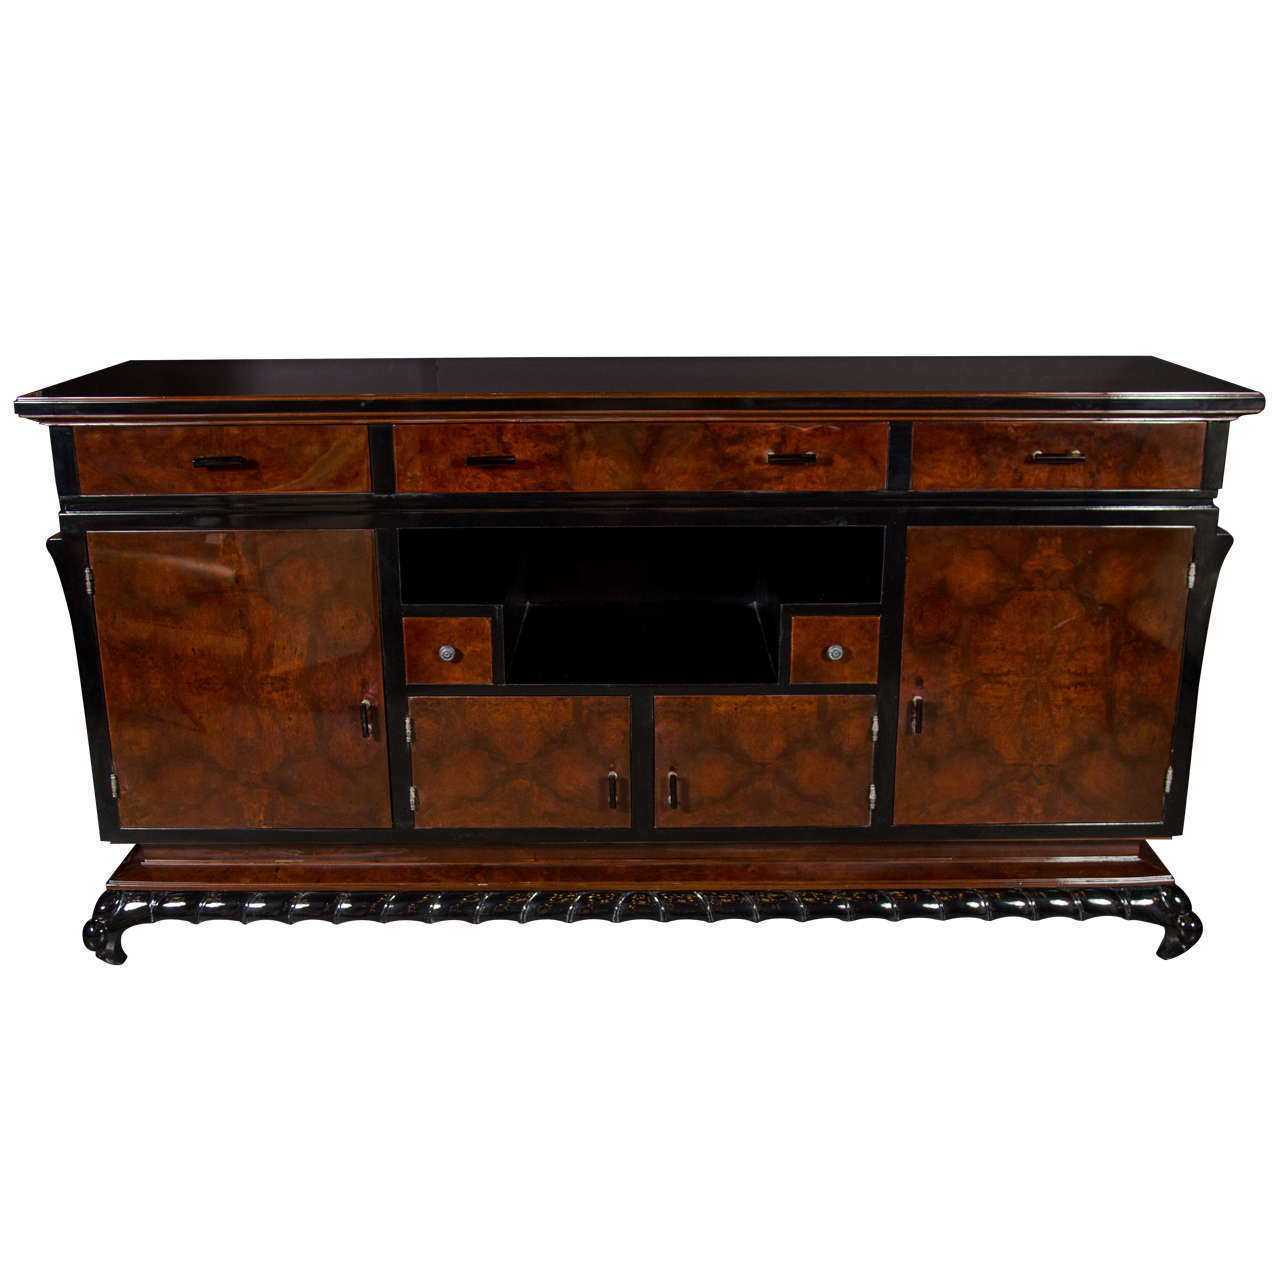 exceptional art deco sideboard in bookmatched burl walnut. Black Bedroom Furniture Sets. Home Design Ideas